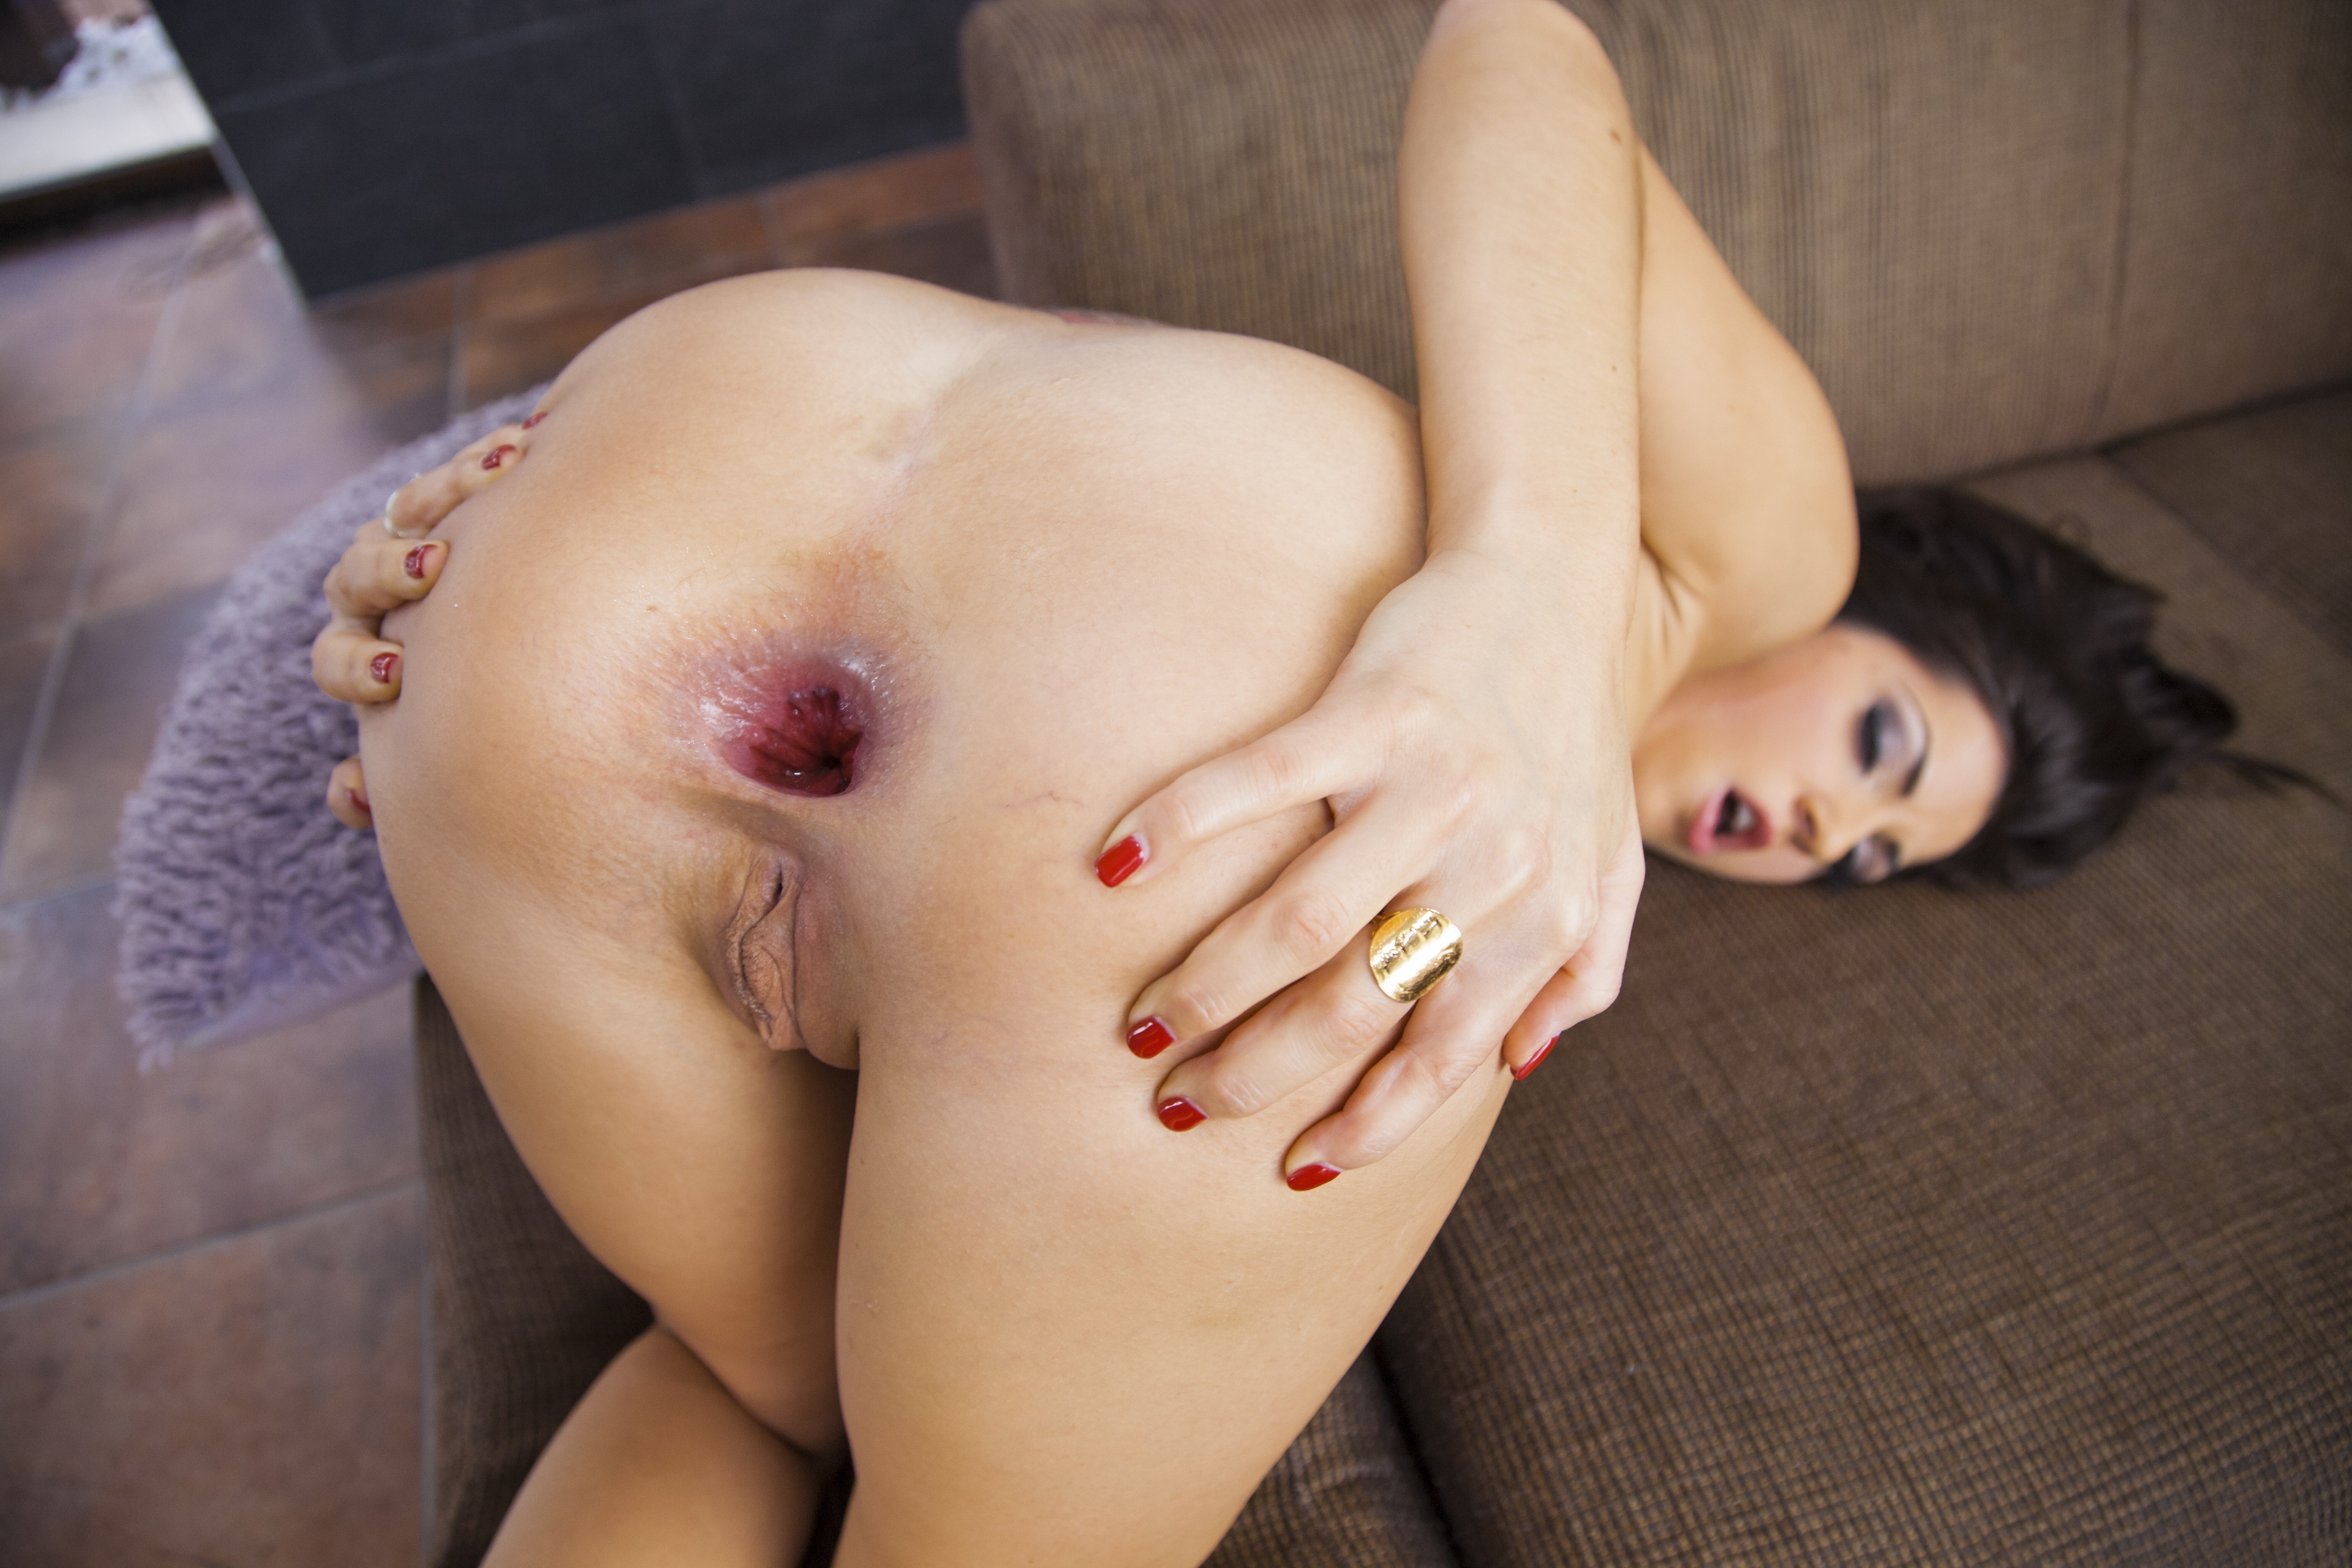 perfect-gape-porn